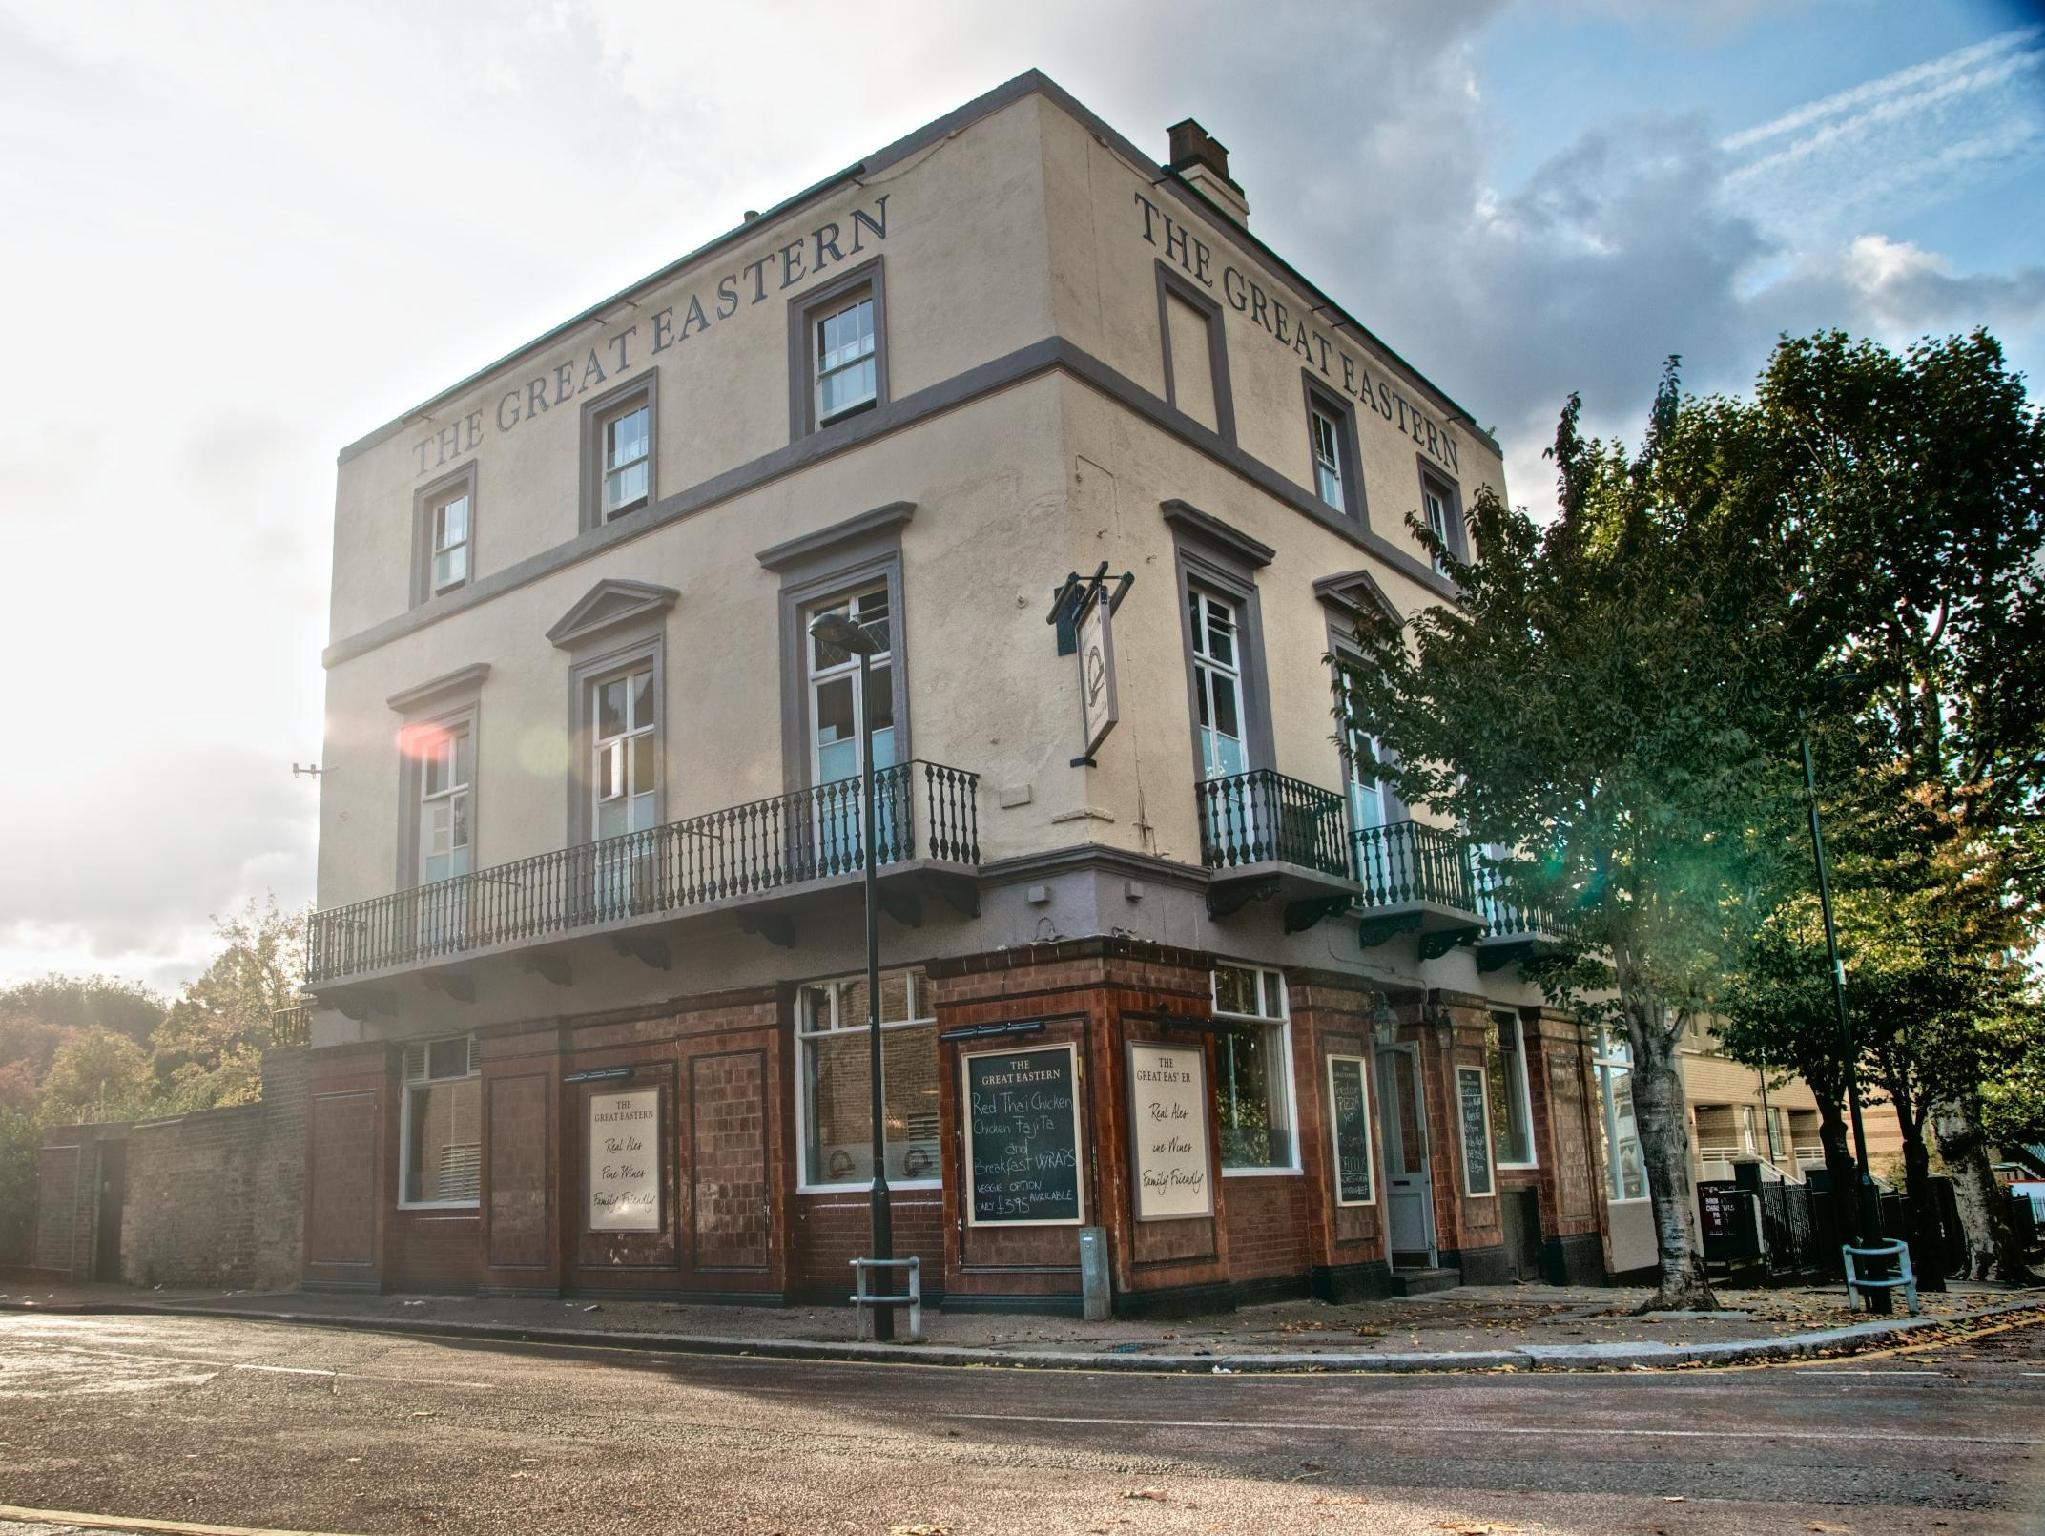 best price on publove the great eastern greenwich in london reviews rh agoda com